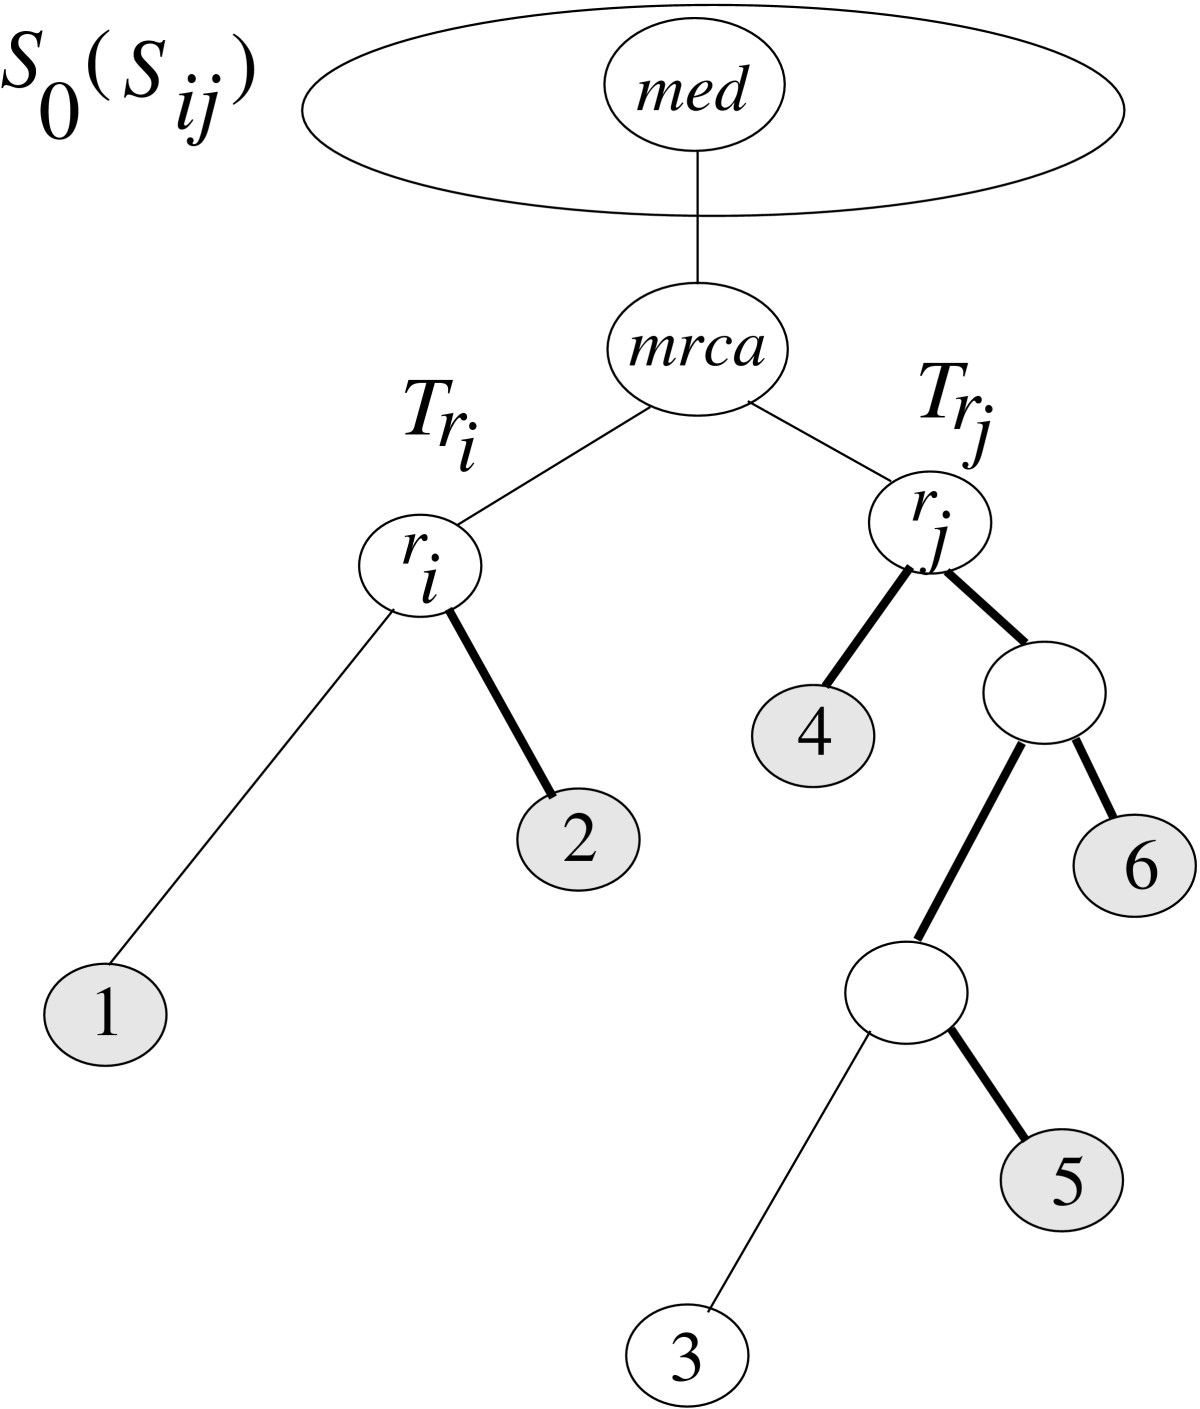 https://static-content.springer.com/image/art%3A10.1186%2F1471-2105-6-92/MediaObjects/12859_2004_Article_417_Fig7_HTML.jpg